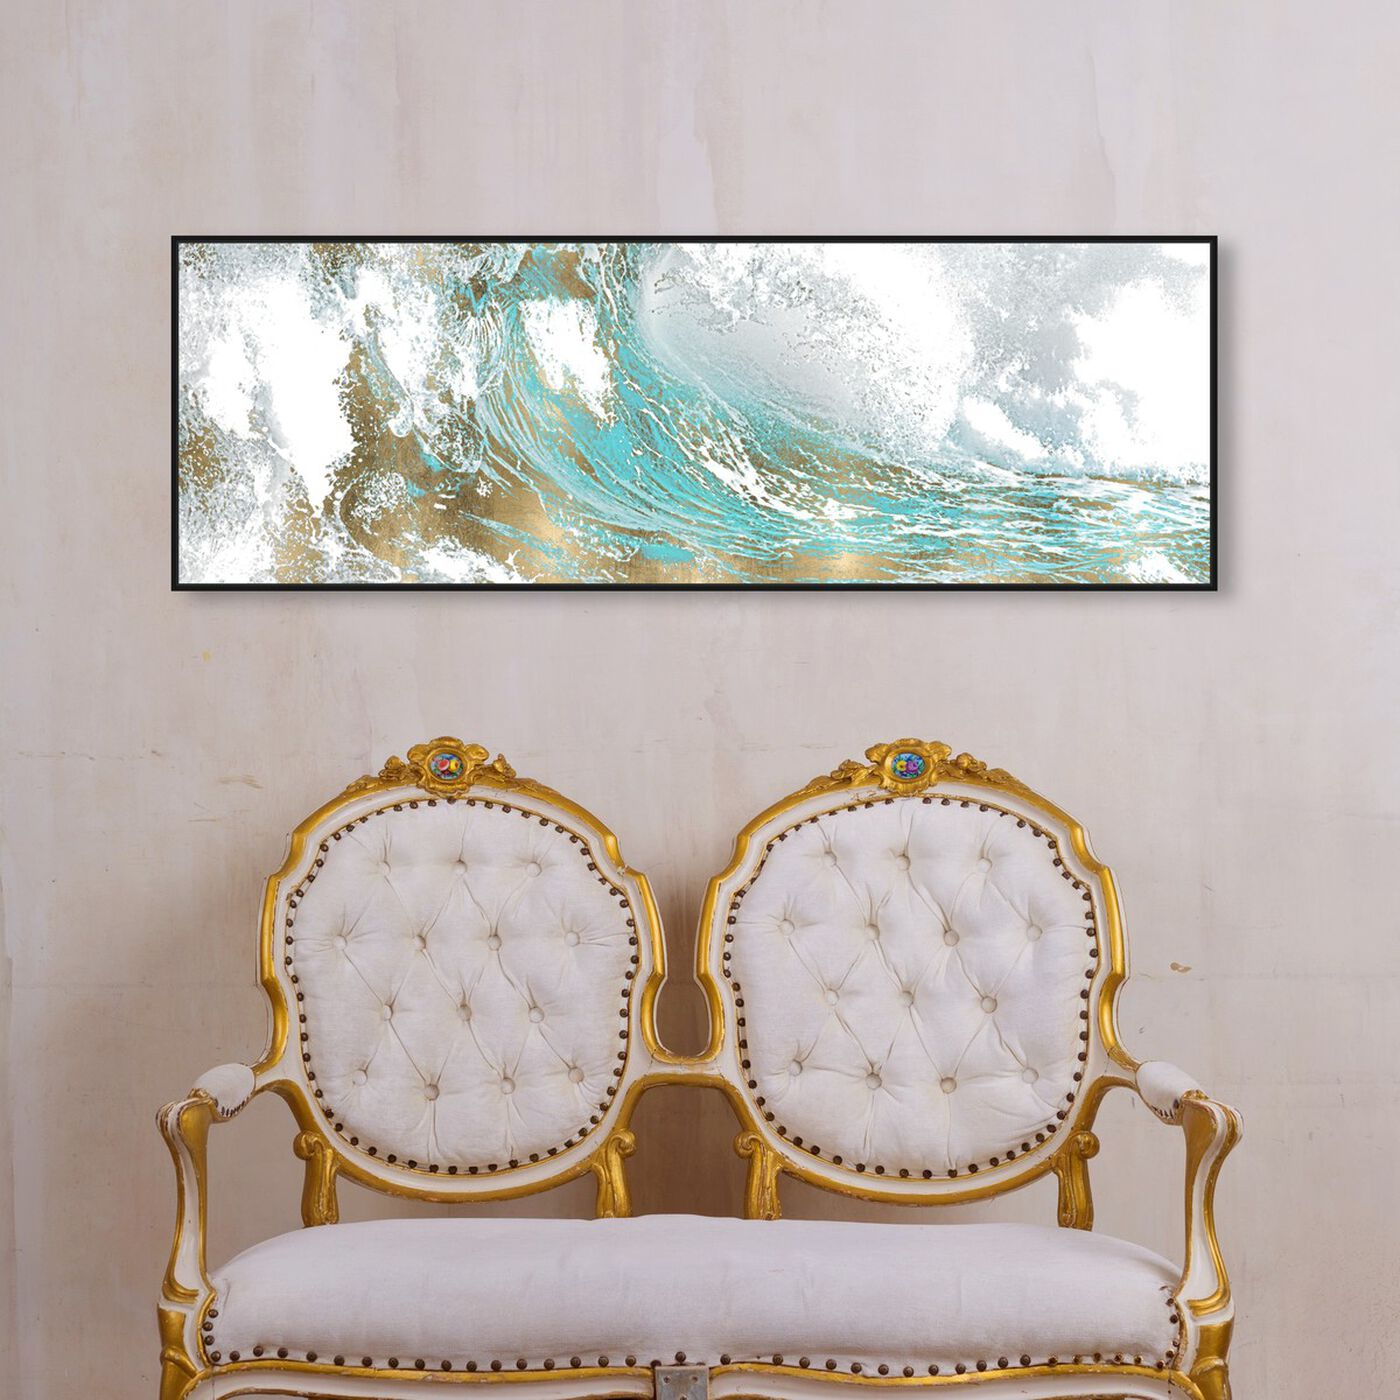 Hanging view of Wave in a Moment Aqua featuring abstract and paint art.